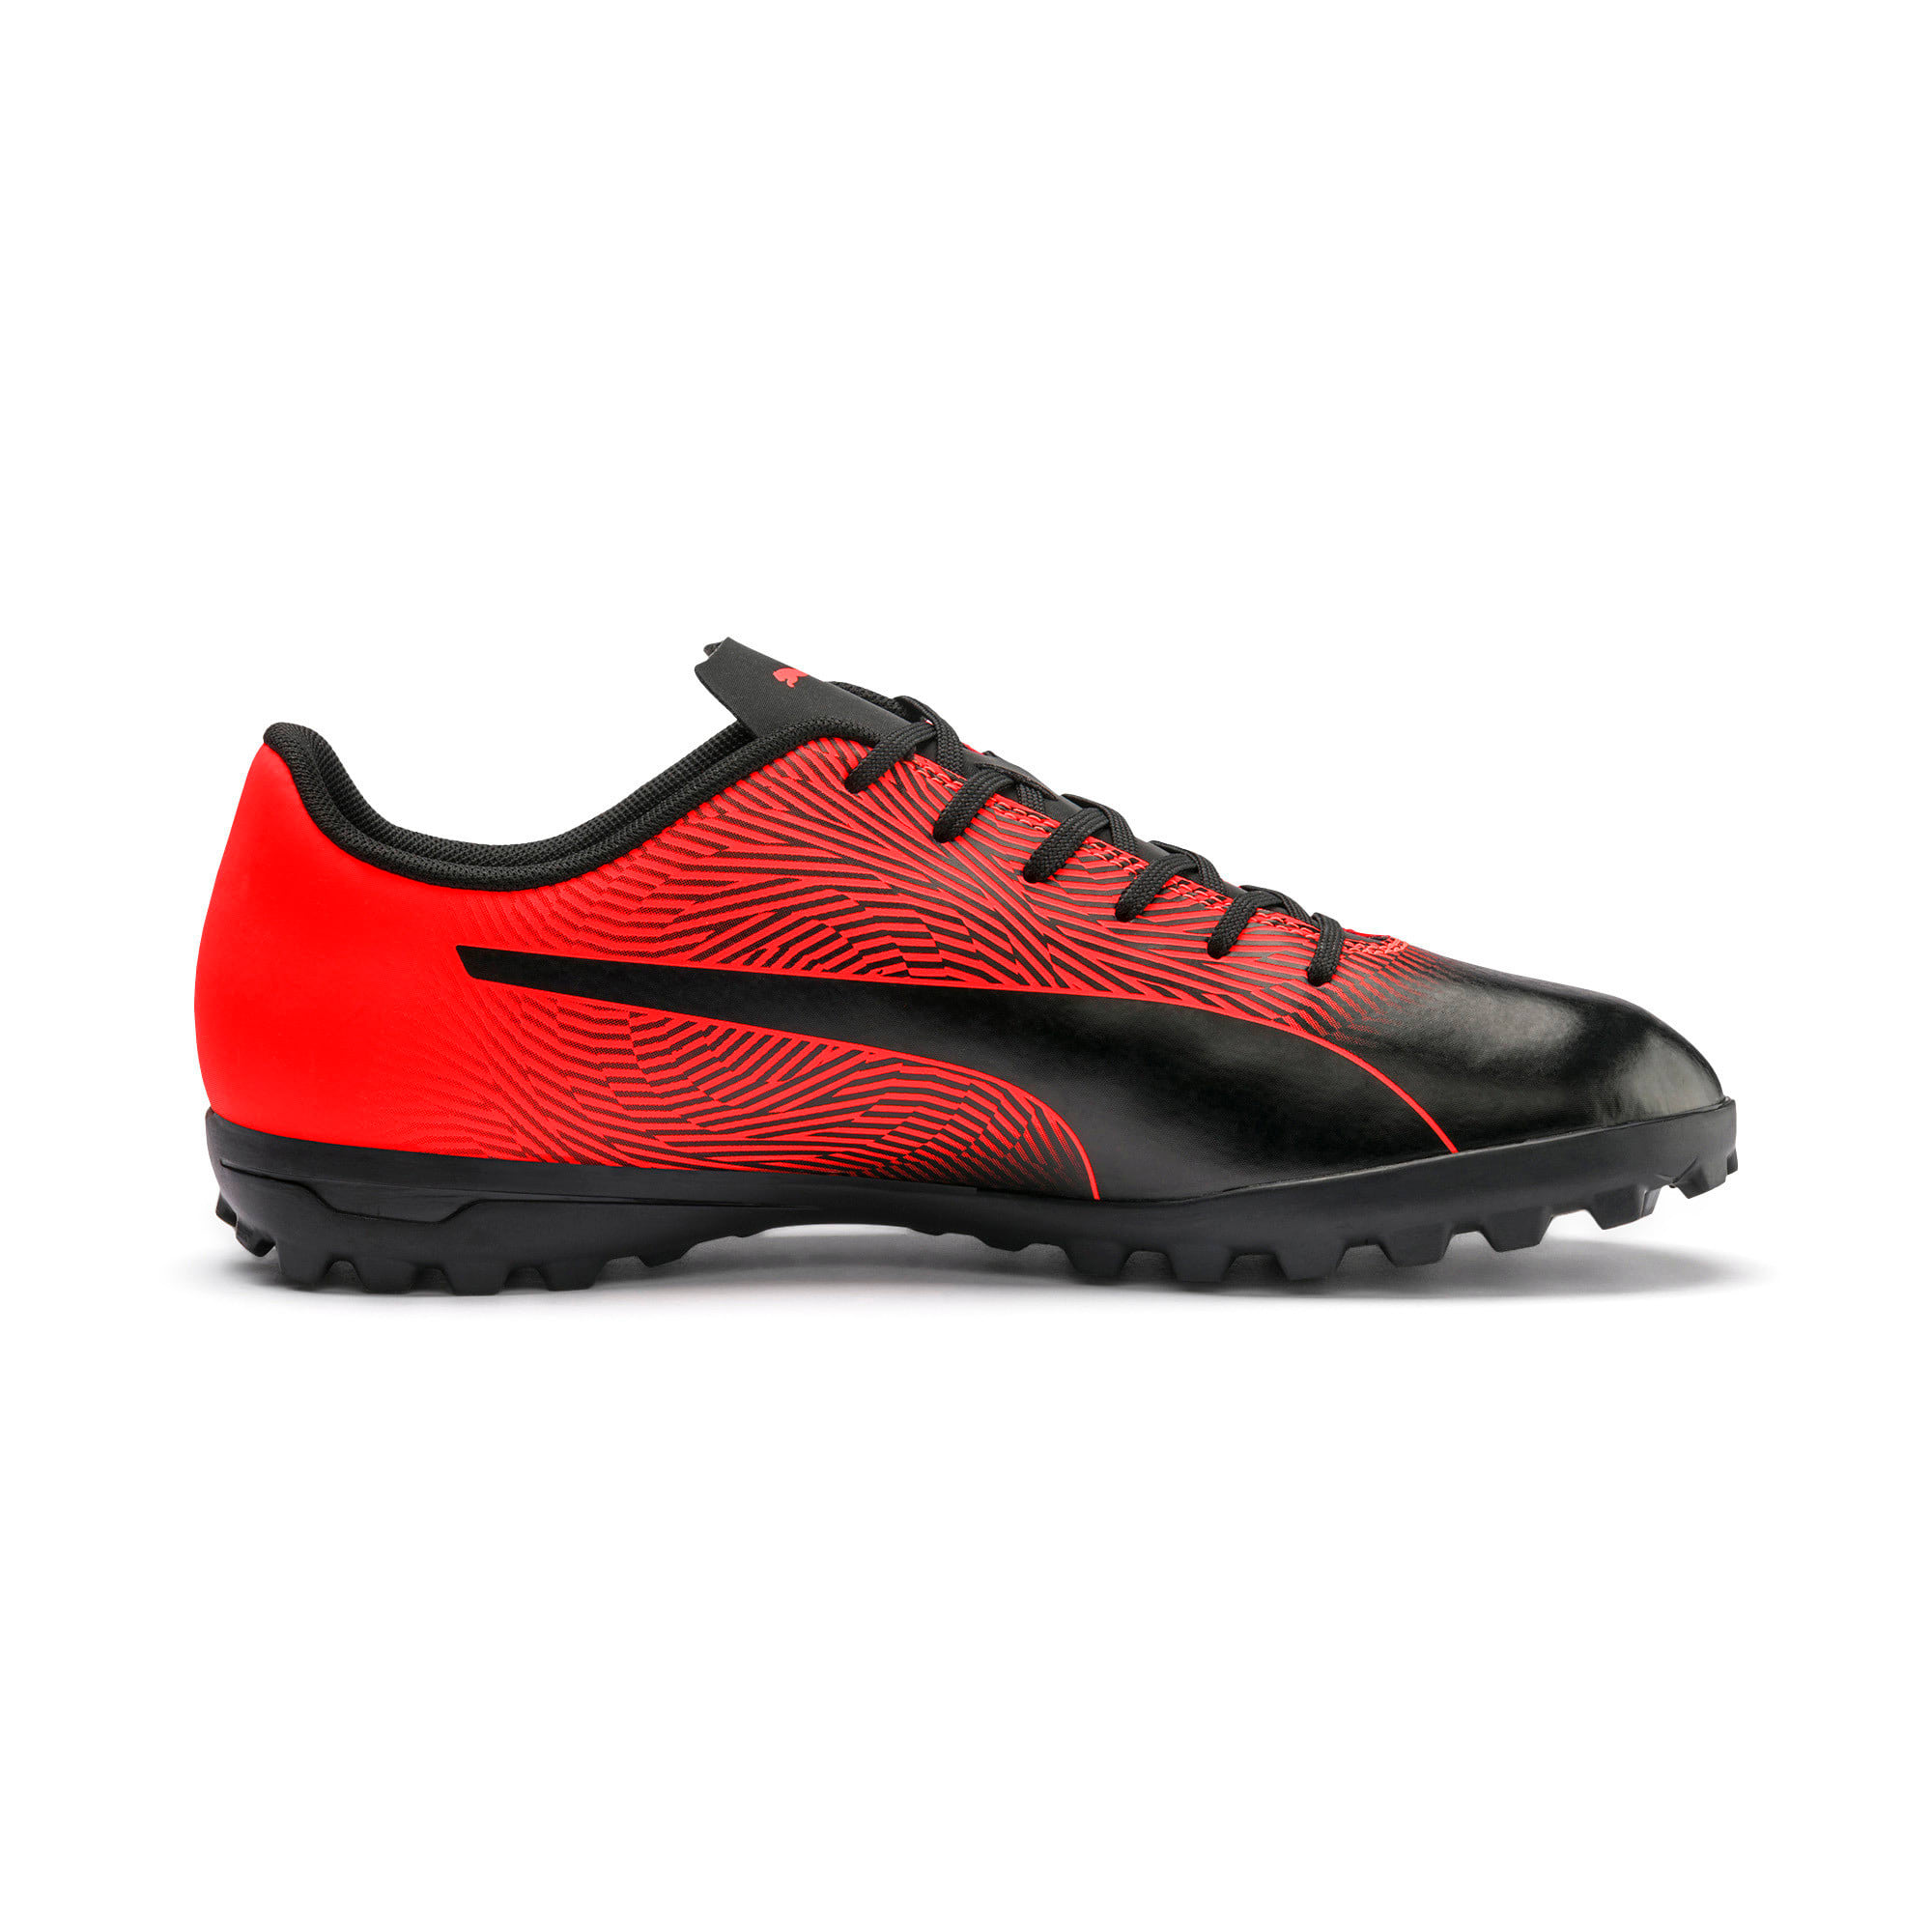 Thumbnail 6 of PUMA Spirit II TT Men's Soccer Shoes, Puma Black-Nrgy Red, medium